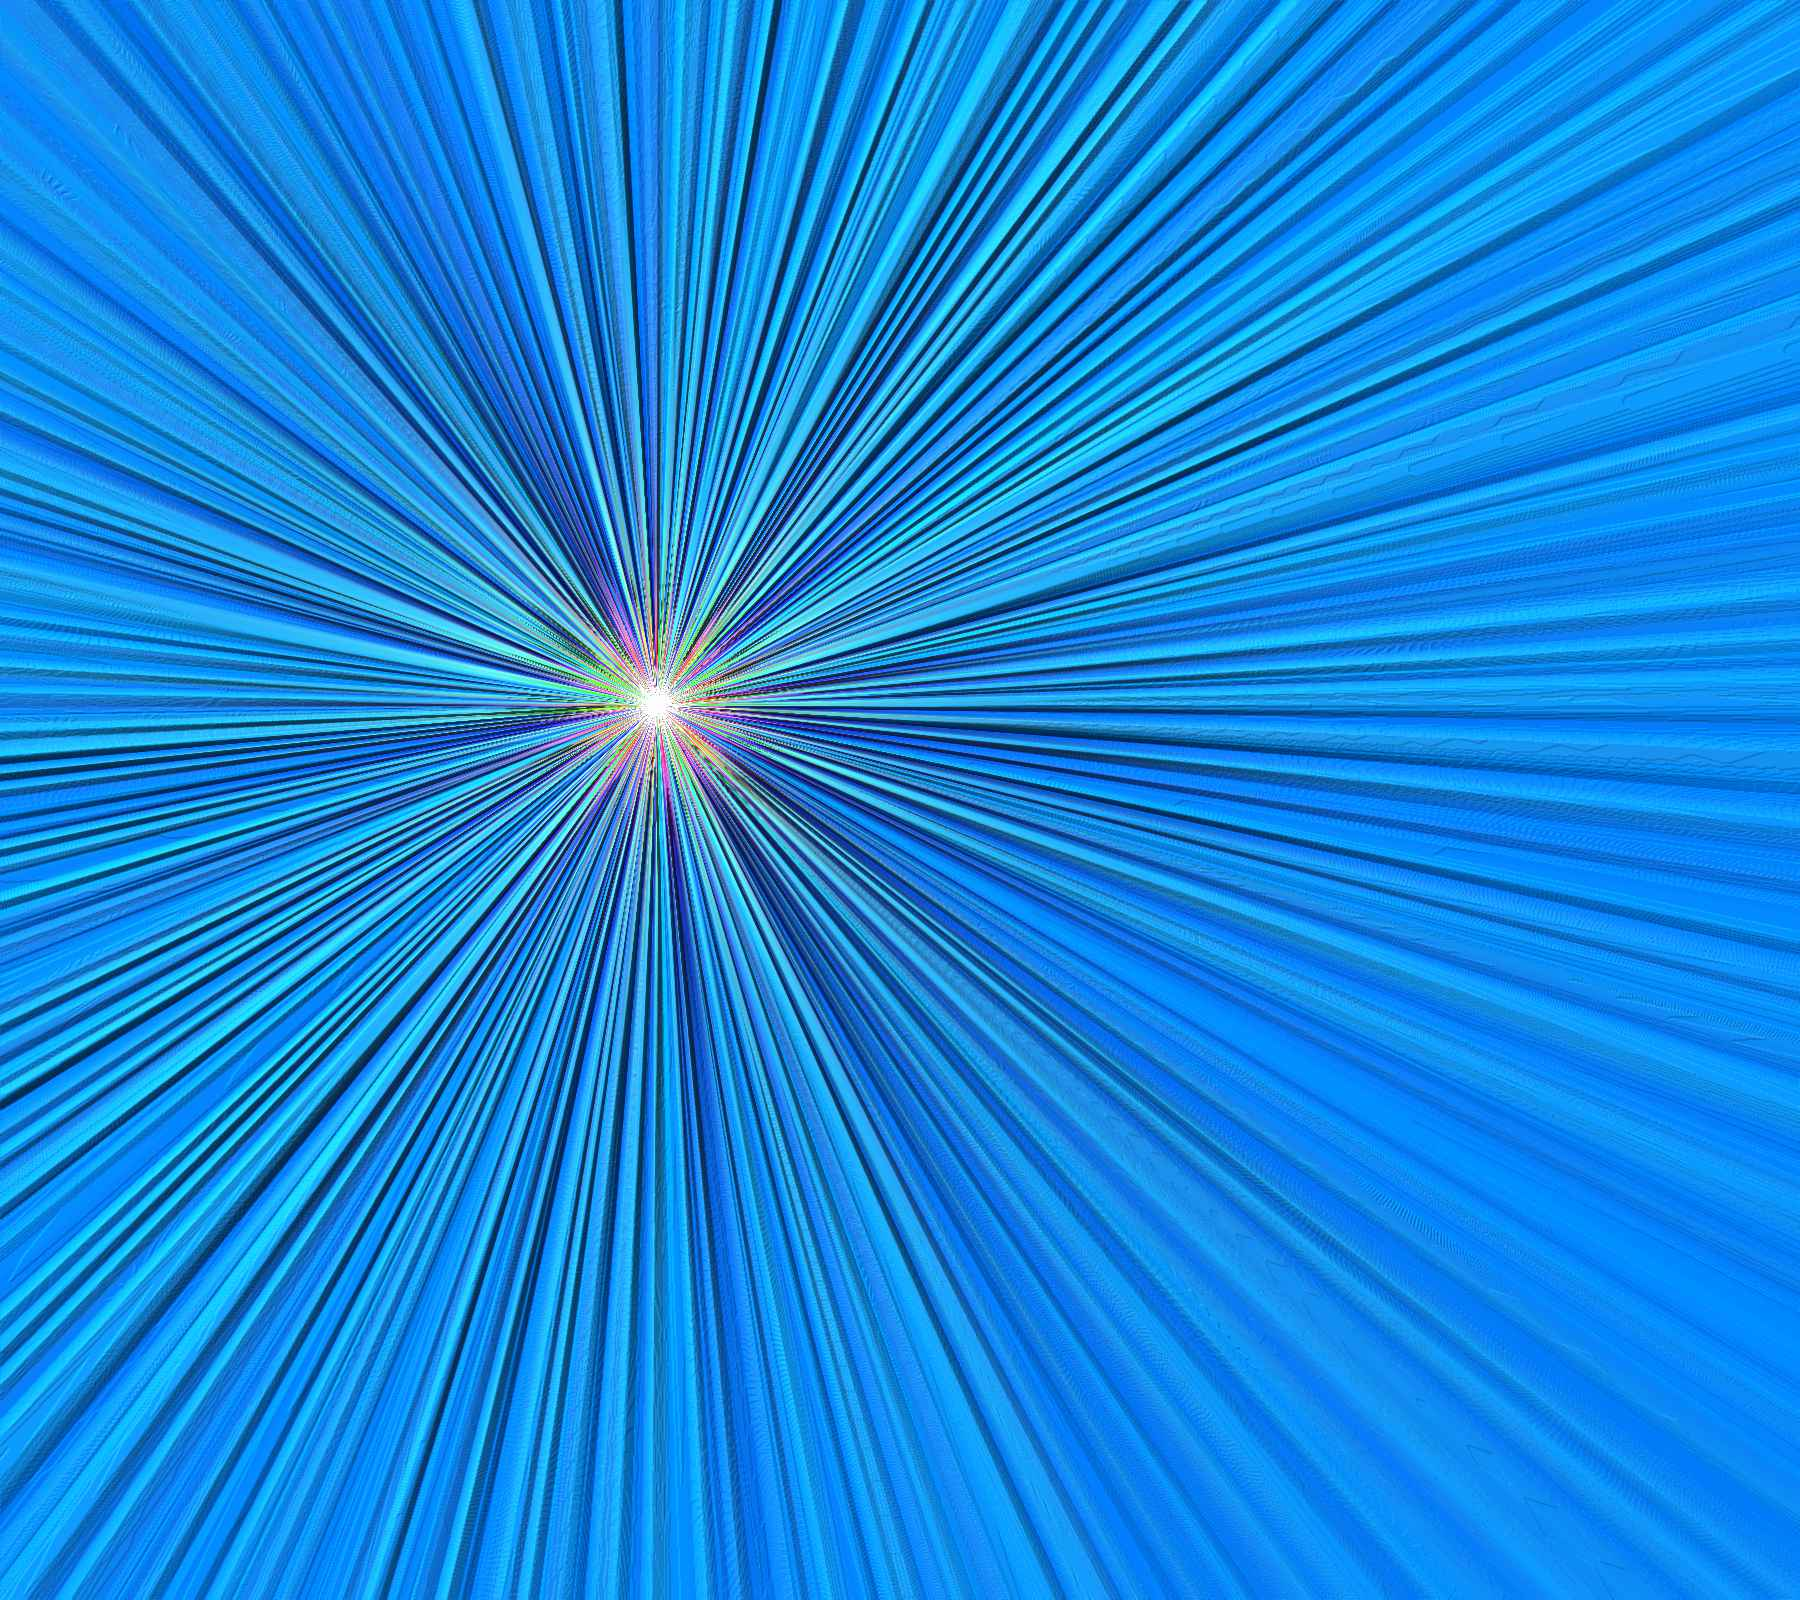 Free Sky Blue Starburst Radiating Lines Backgrounds 1800x1600